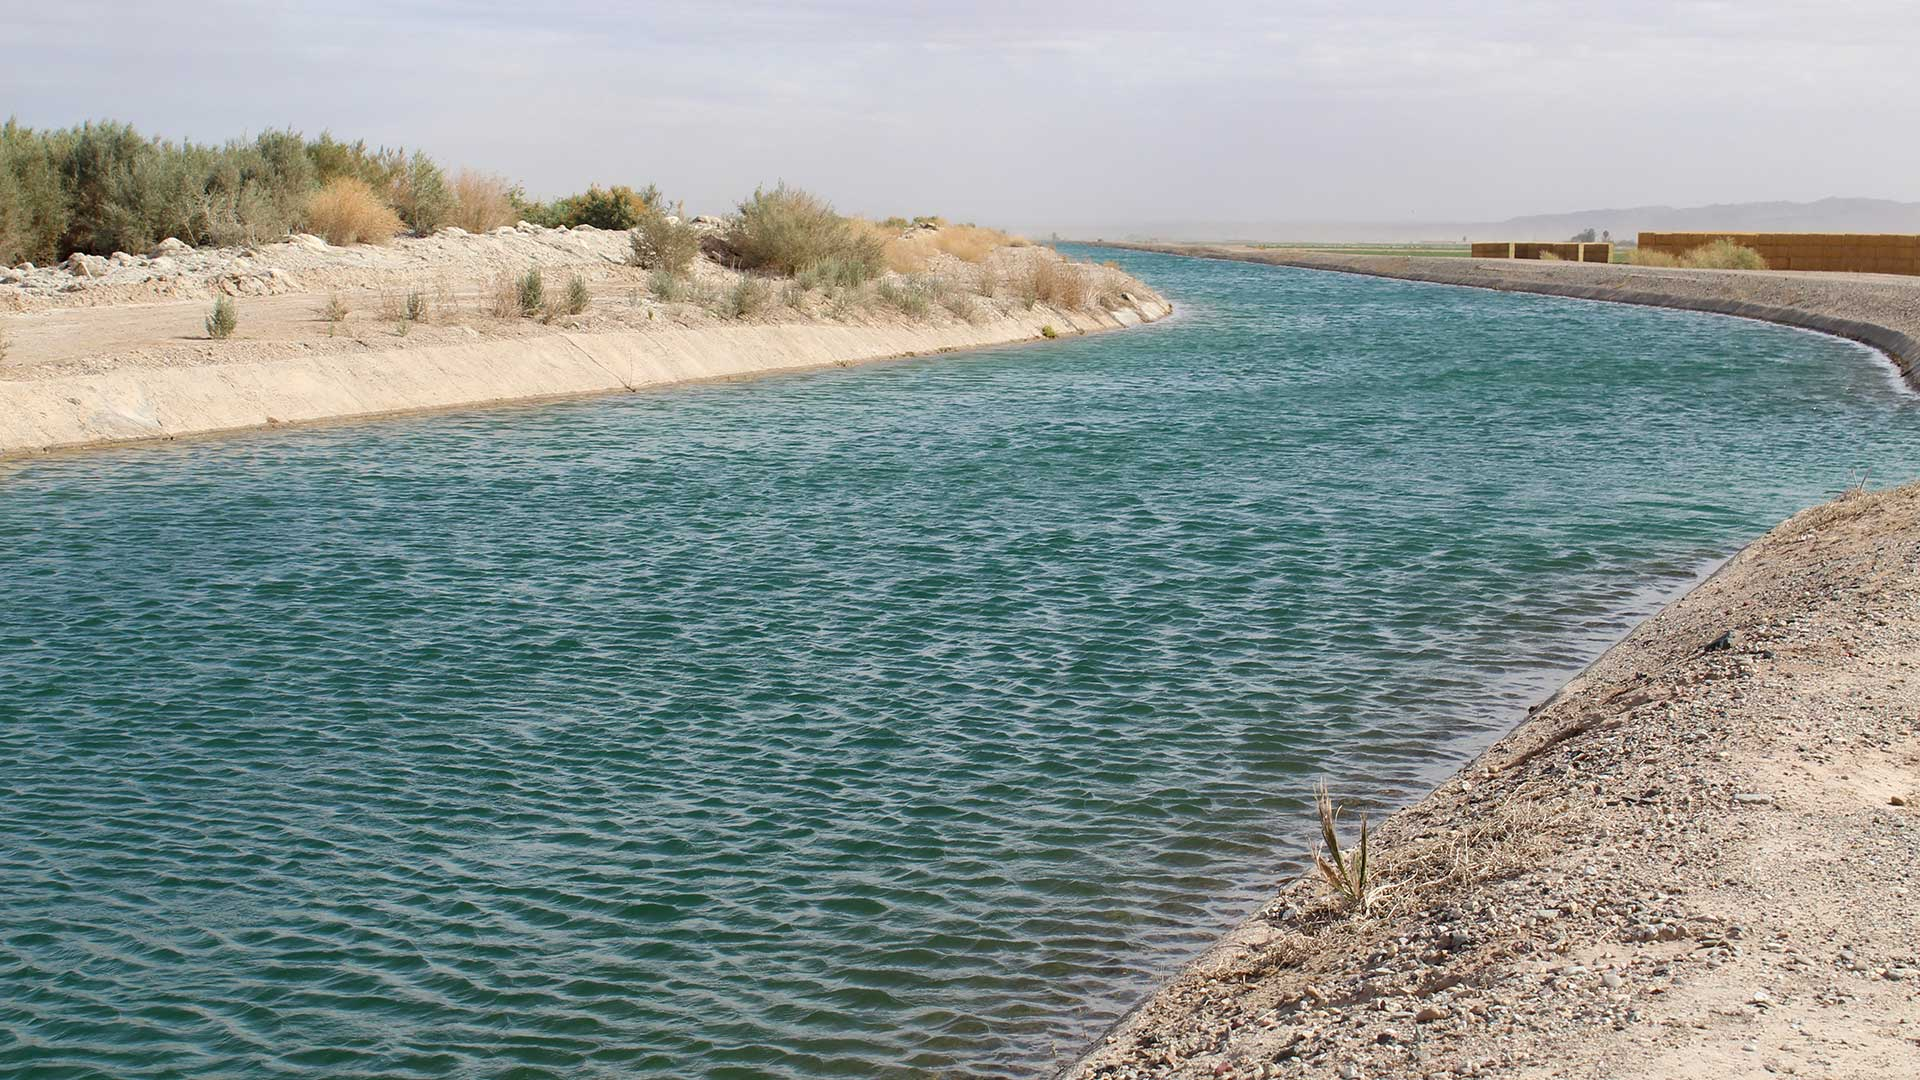 A canal carries Colorado River water to farmland near Poston, Arizona, owned and operated by the Colorado River Indian Tribes, a key player in Arizona's Drought Contingency Plan.